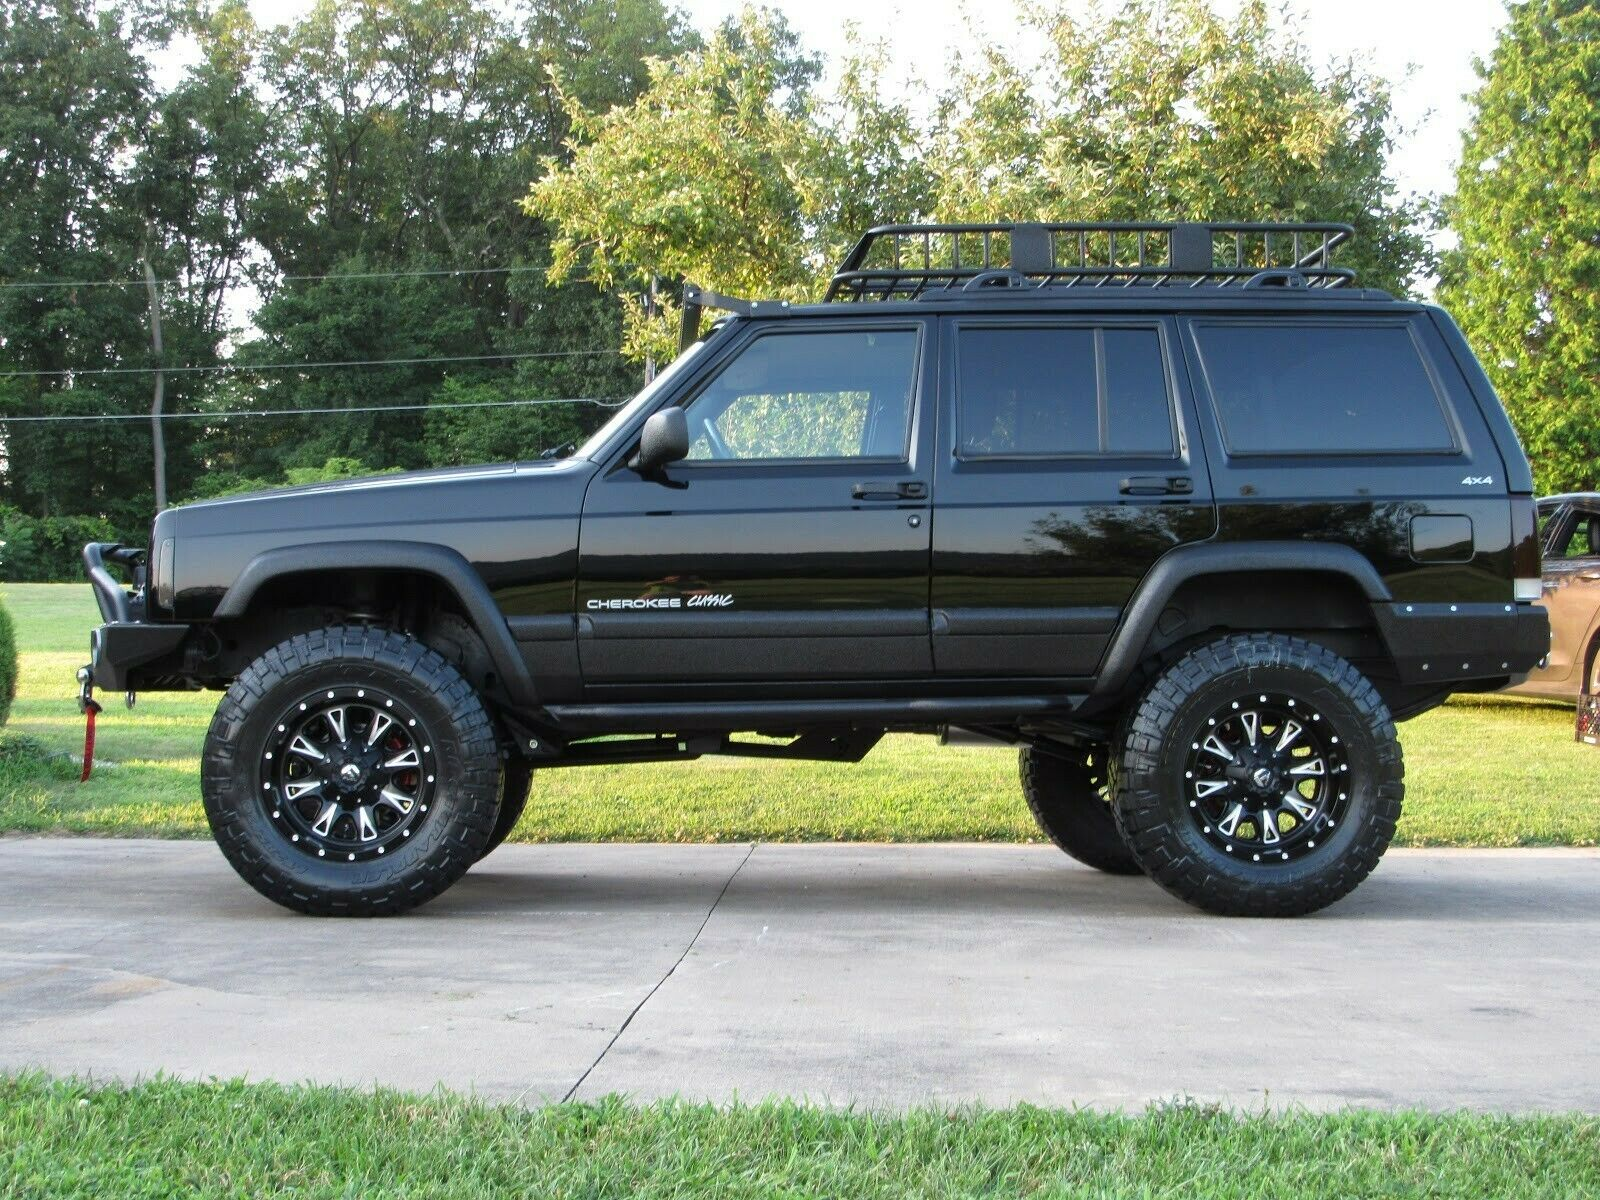 For Sale Restored 1999 Jeep Cherokee Black 4 5 Lifted